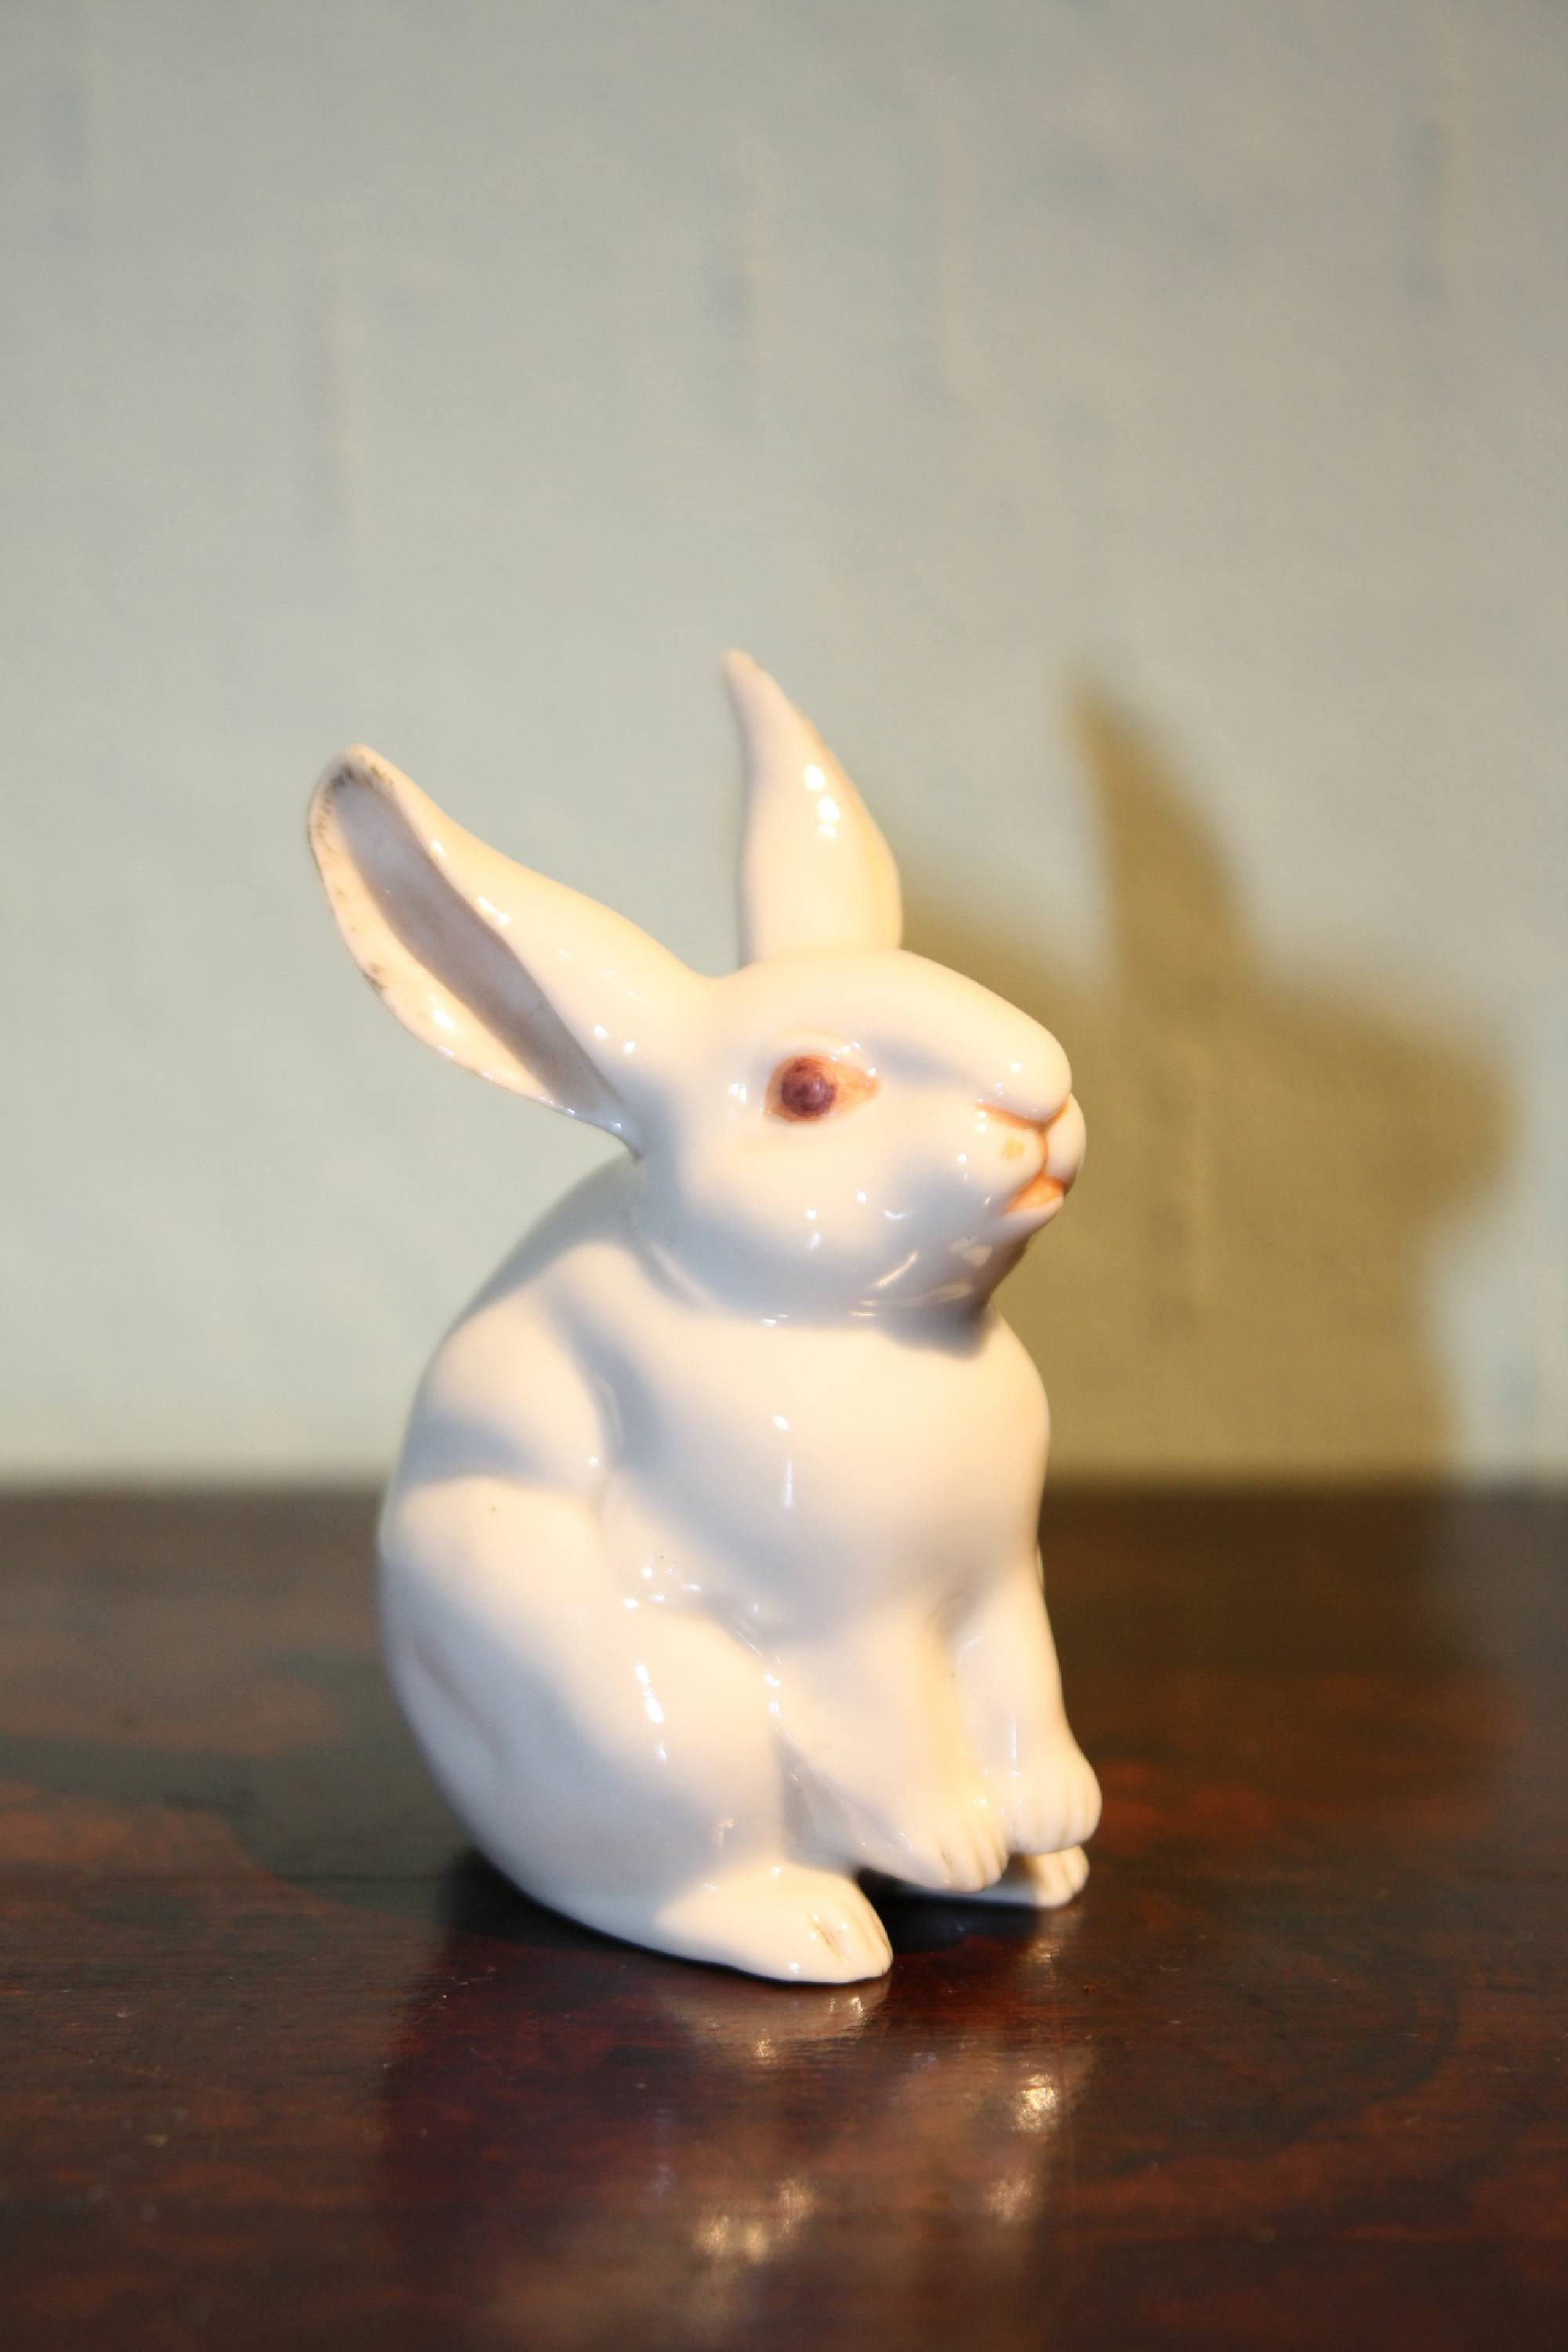 A very small vintage antique 1900 porcelain figurine rabbit by Nymphenburg, Germany